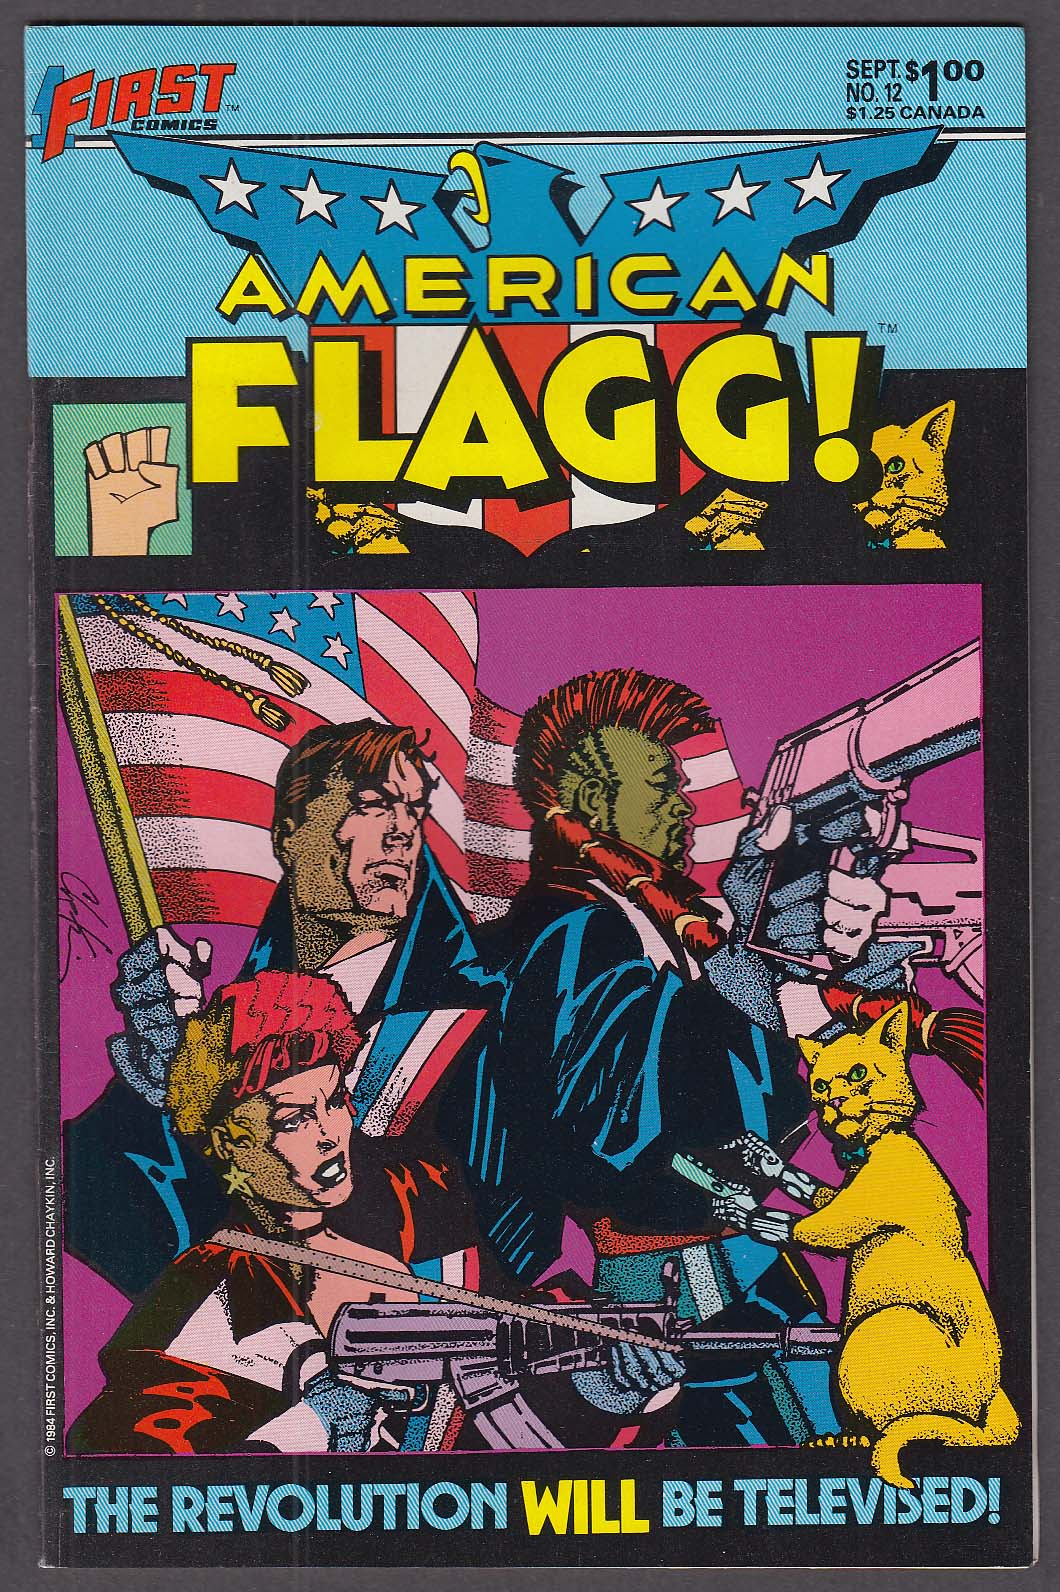 AMERICAN FLAGG! #12 First comic book 9 1984